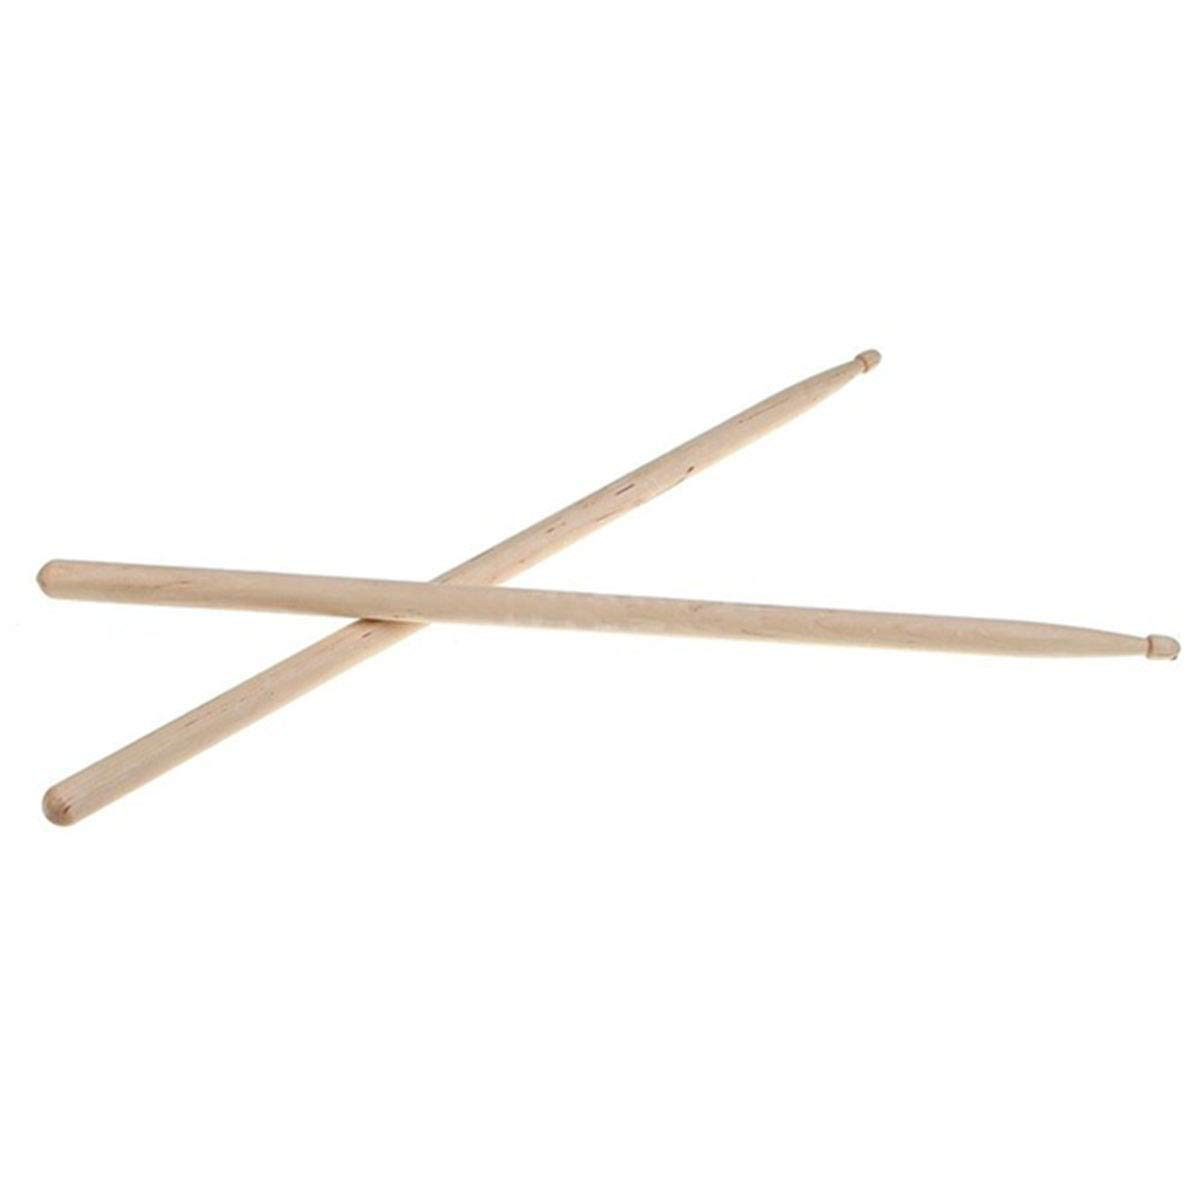 SODIAL 1 pair Percussion Accessories Band Stick Musical Design Lightweight For Drum Drumsticks Maple Wood Drum Sticks 7A